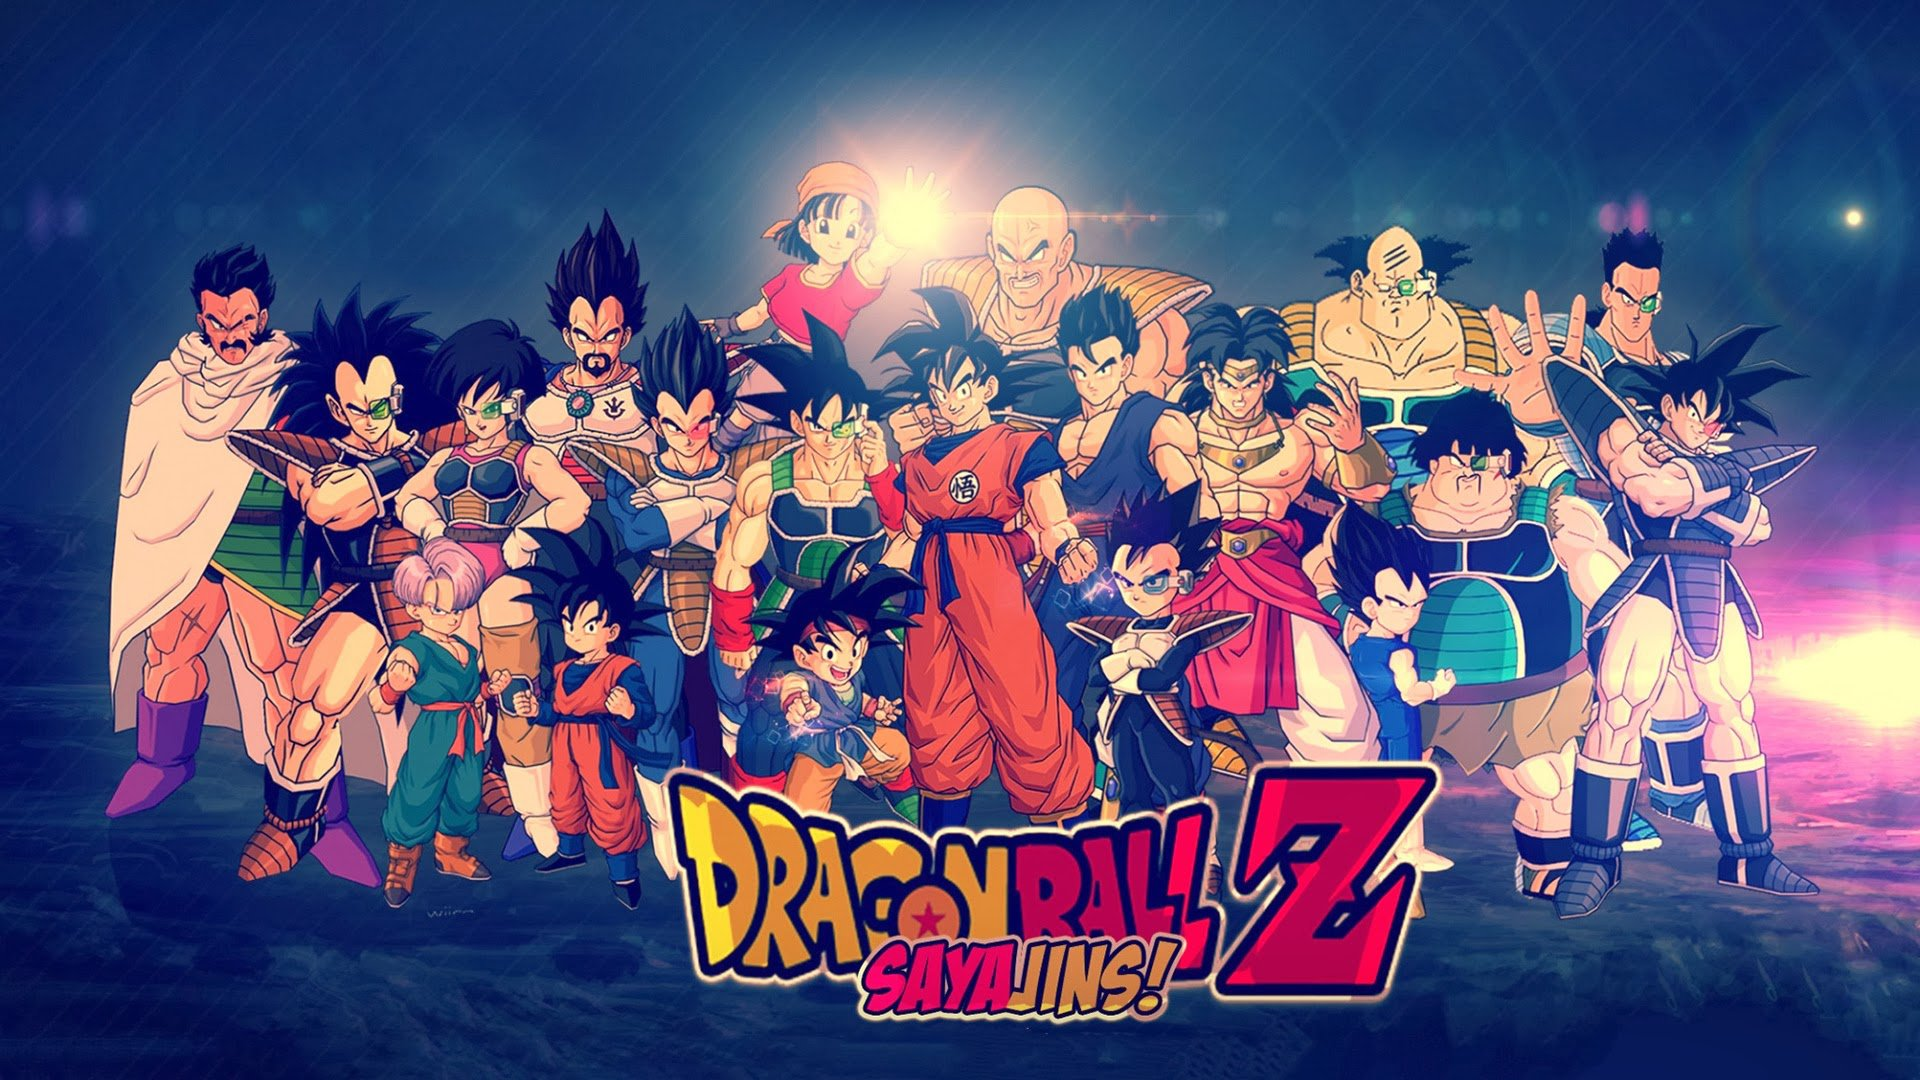 Where to Find Dragon ball Z Wallpaper For Your Computer